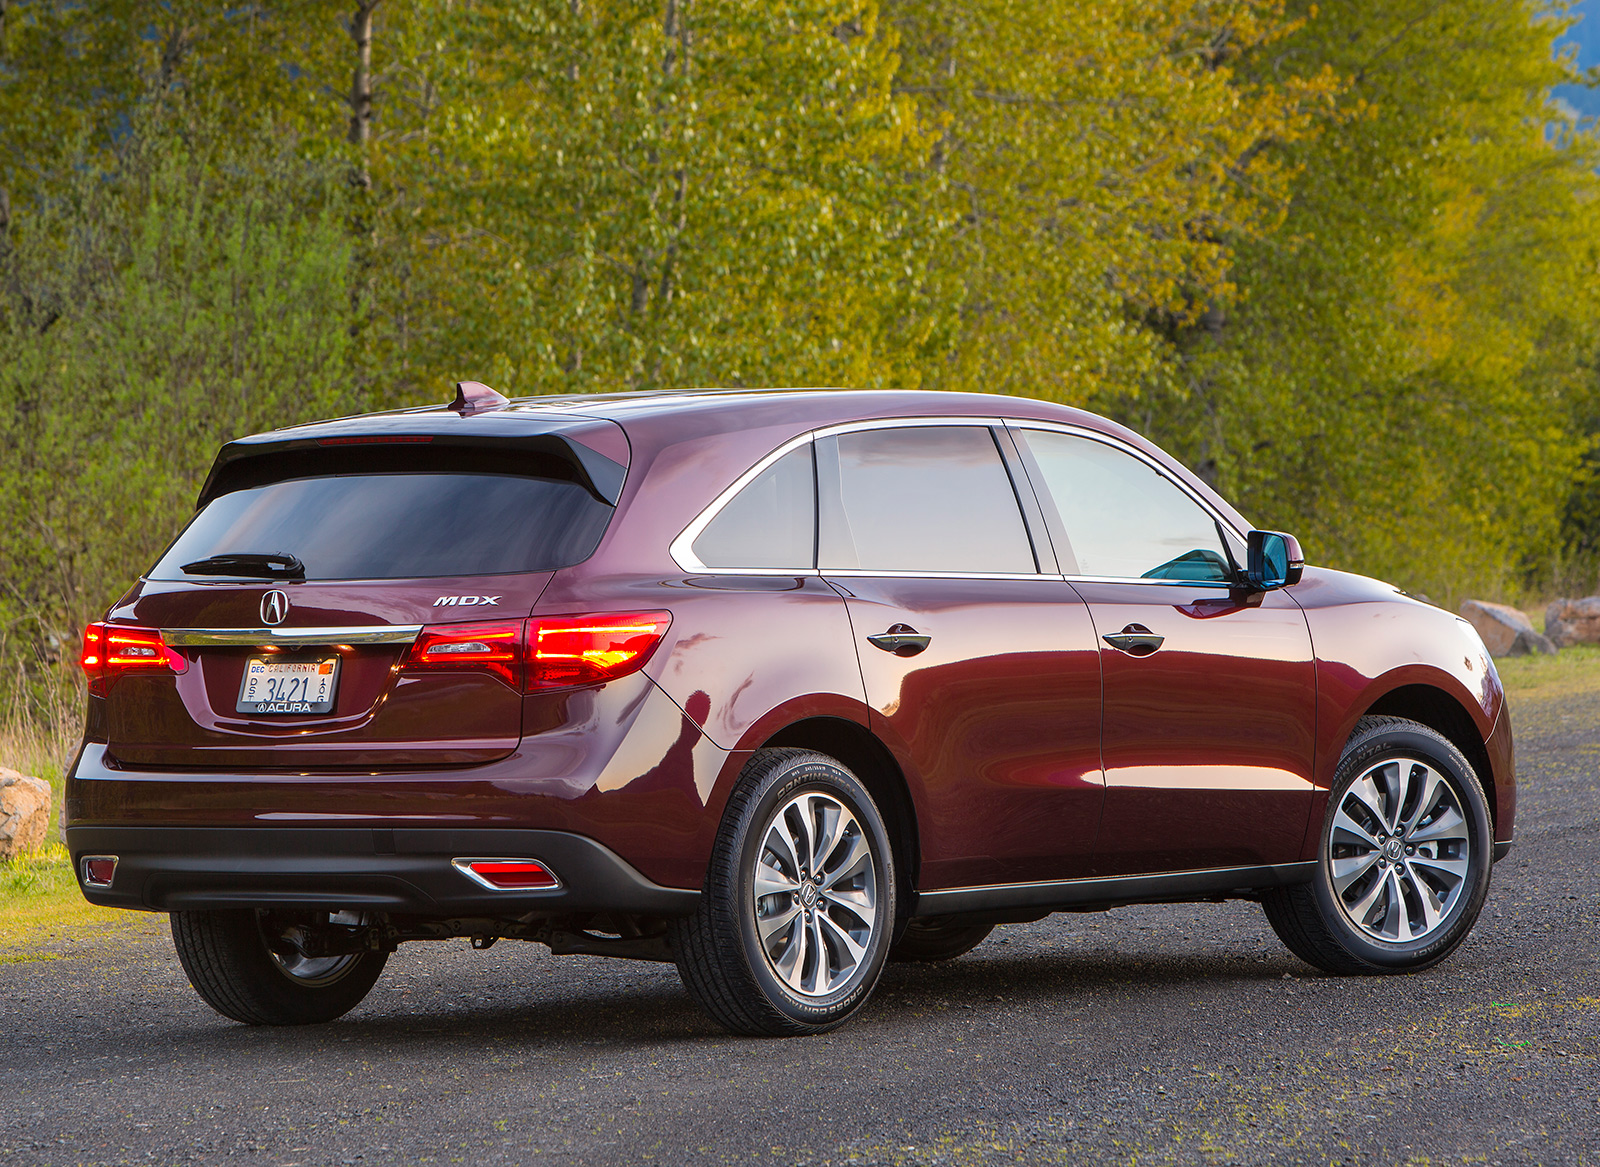 Acura Mdx Is The 2016 Or The 2015 Model The Best Choice